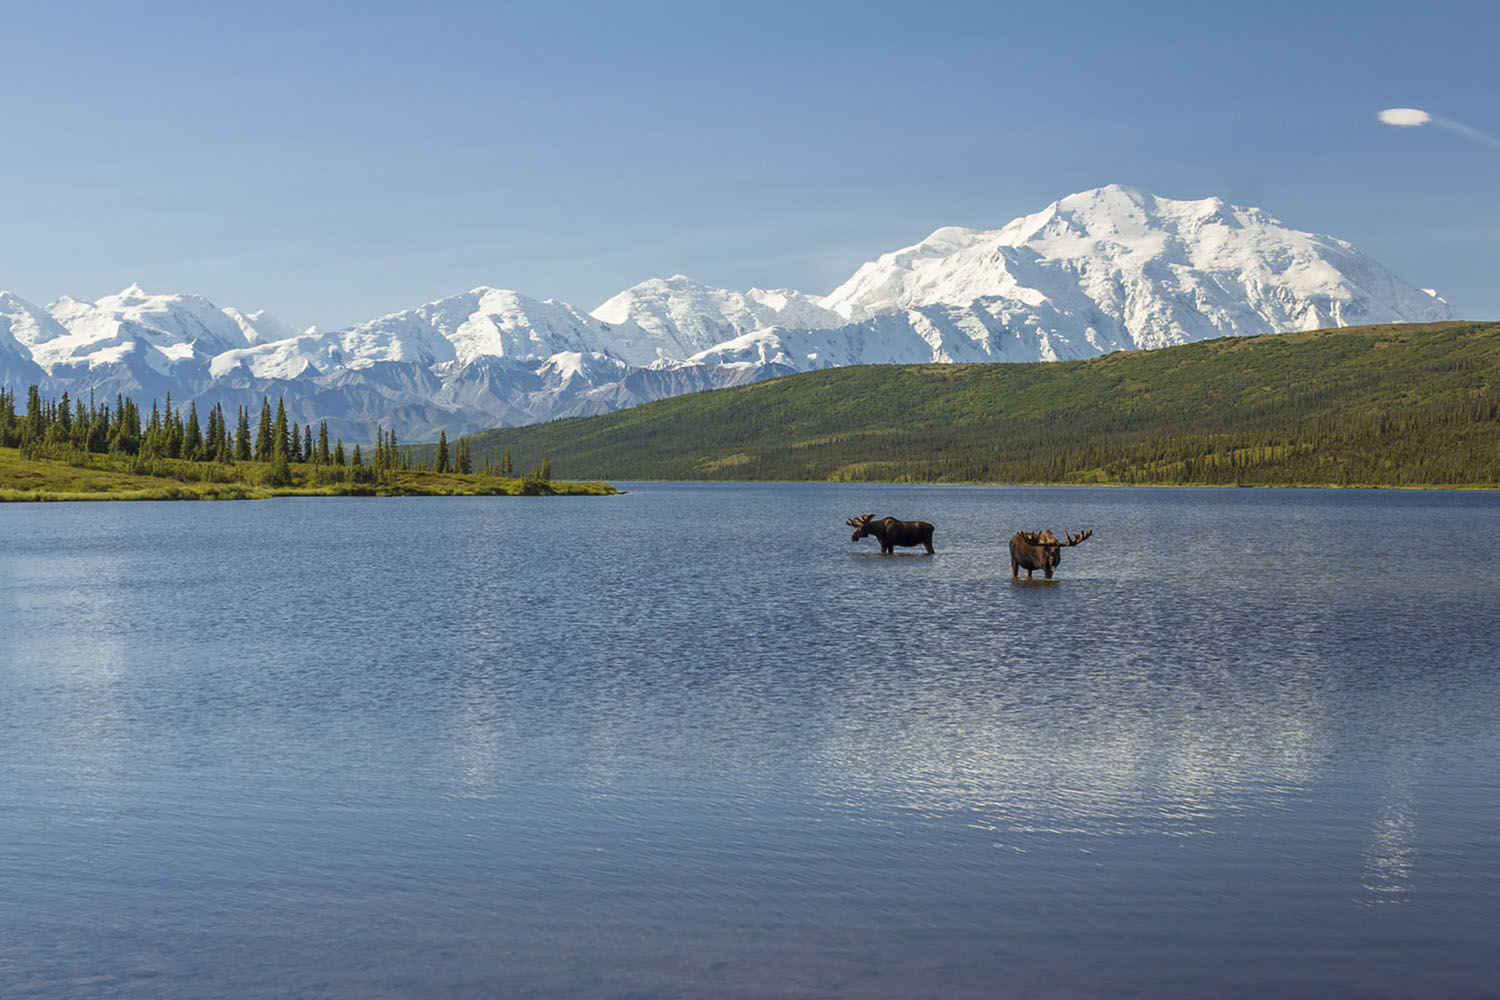 Two moose drink from a lake in Denali National Park in Alaska. Snowcapped mountains are in the background.